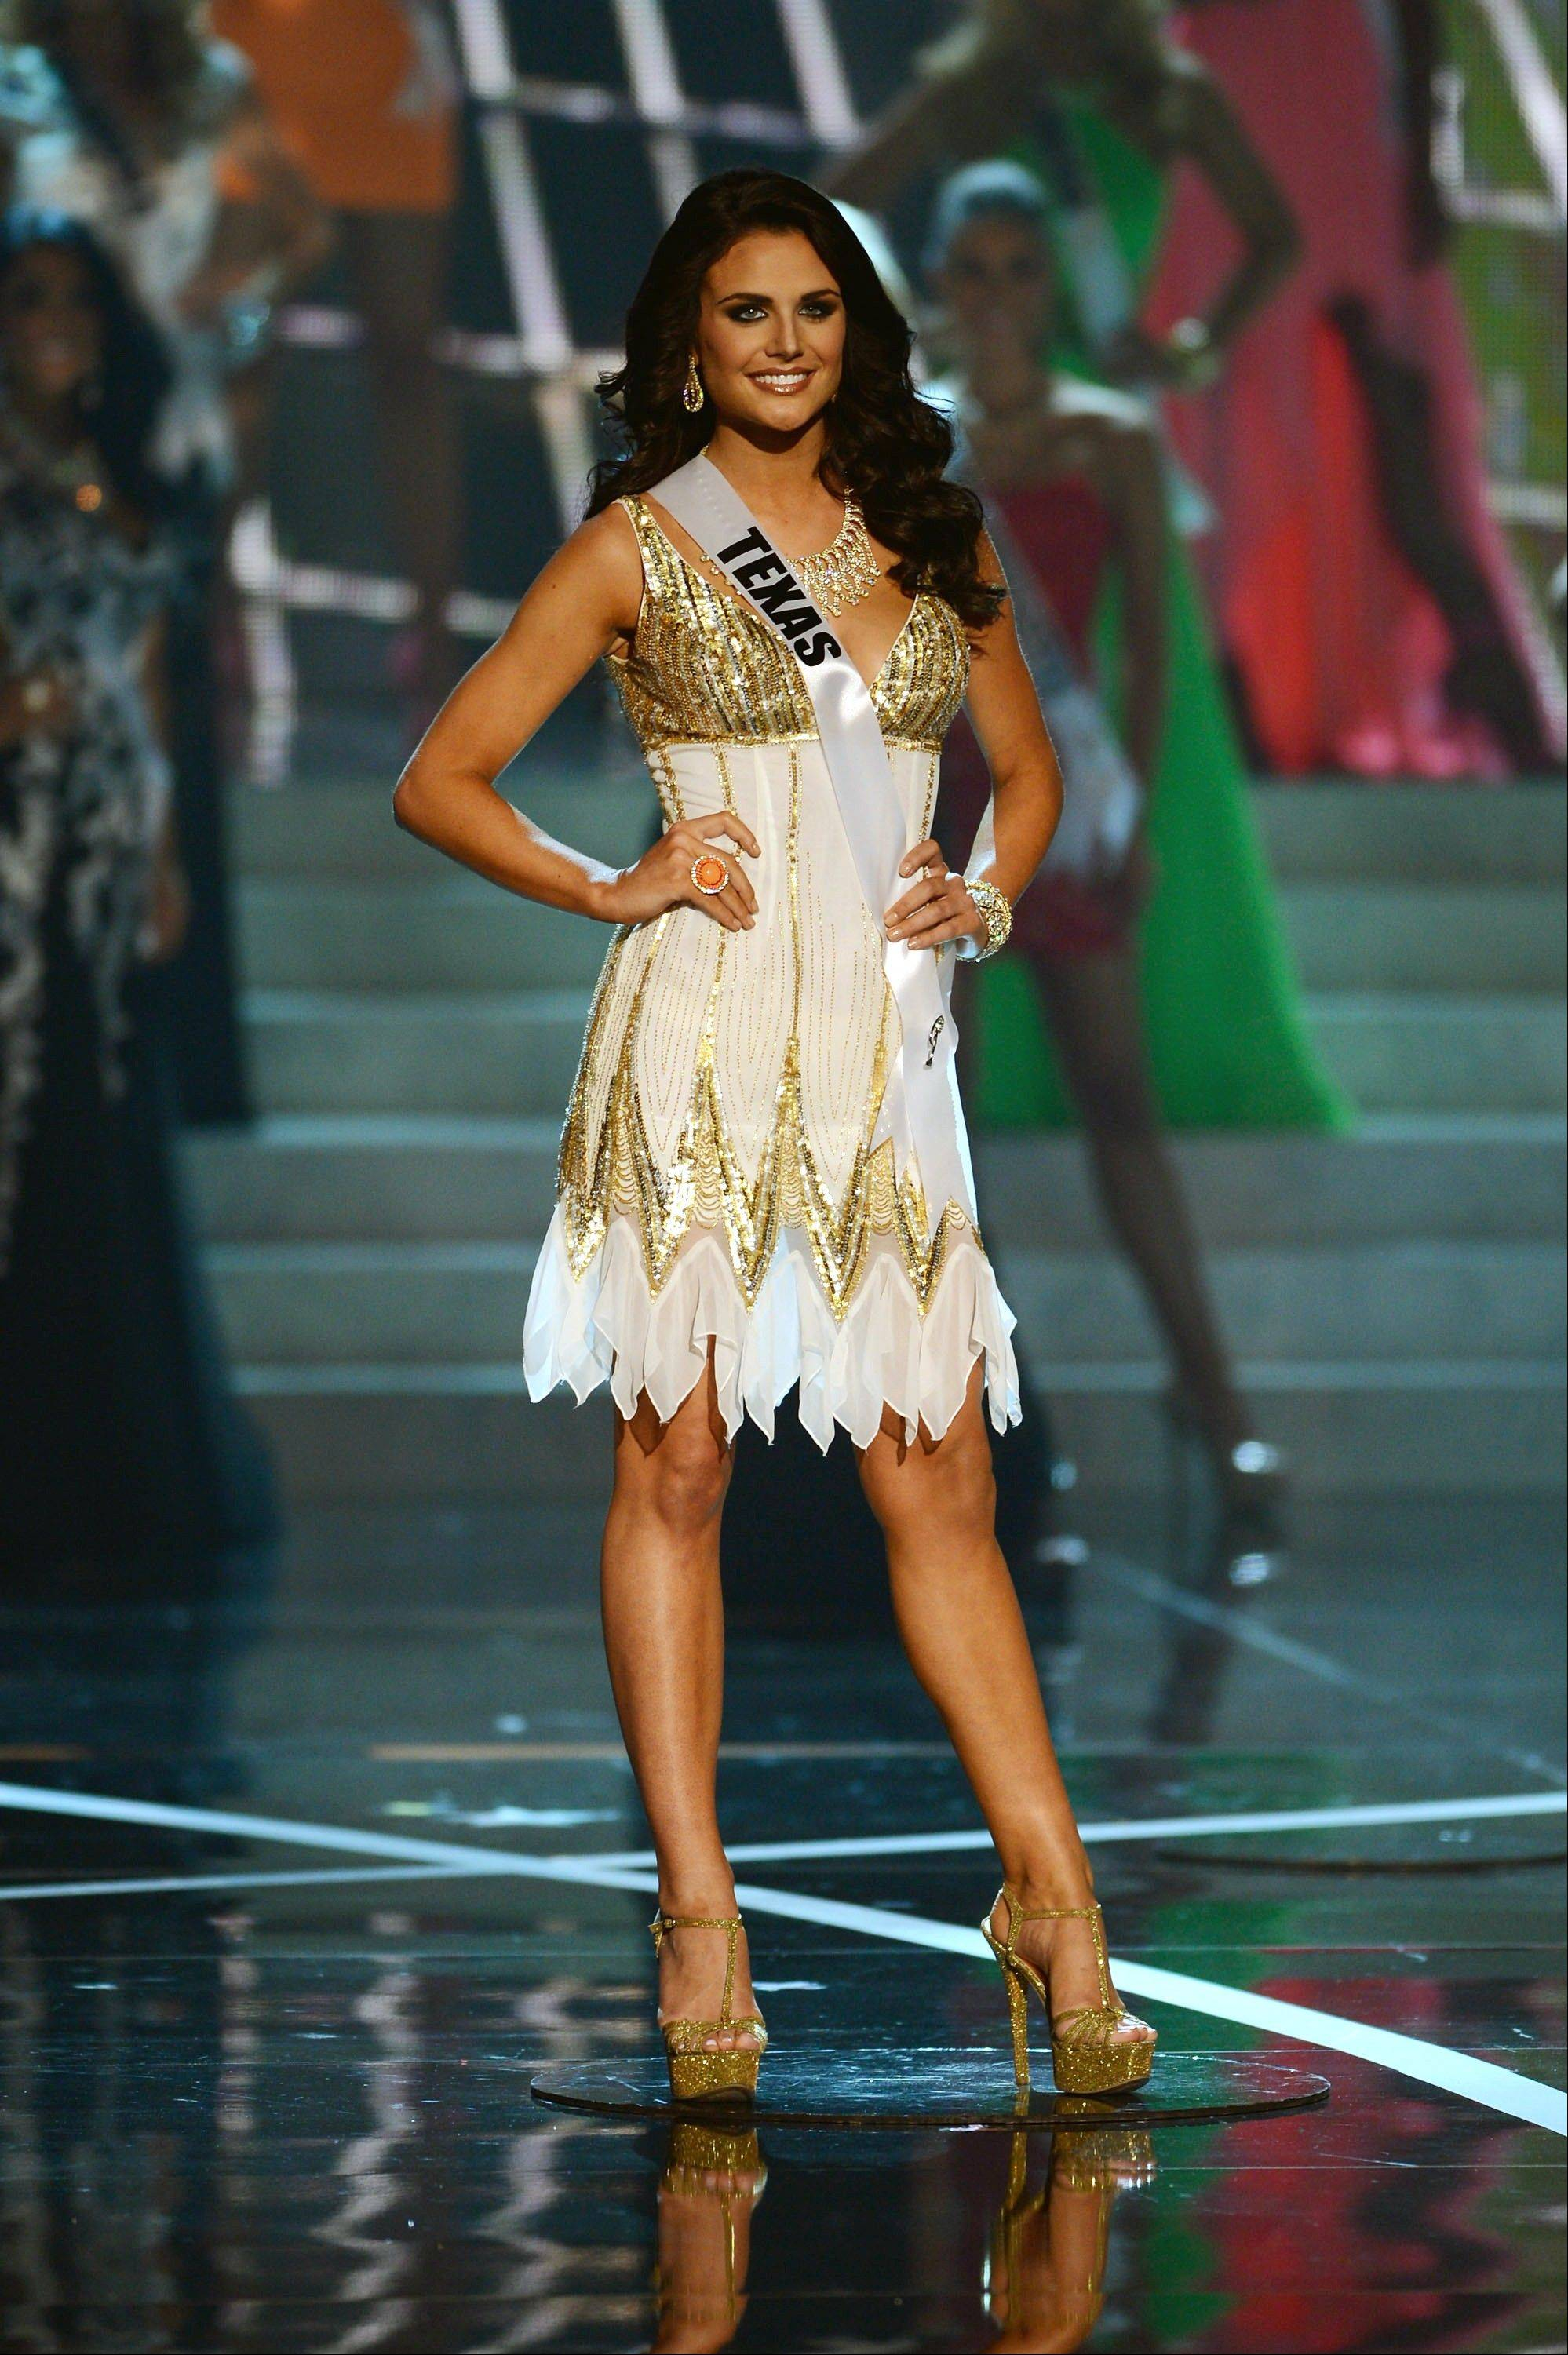 Miss Texas Ali Nugent from Dallas walks the runway during the introductions of the Miss USA 2013 pageant, Sunday, June 16, 2013, in Las Vegas.